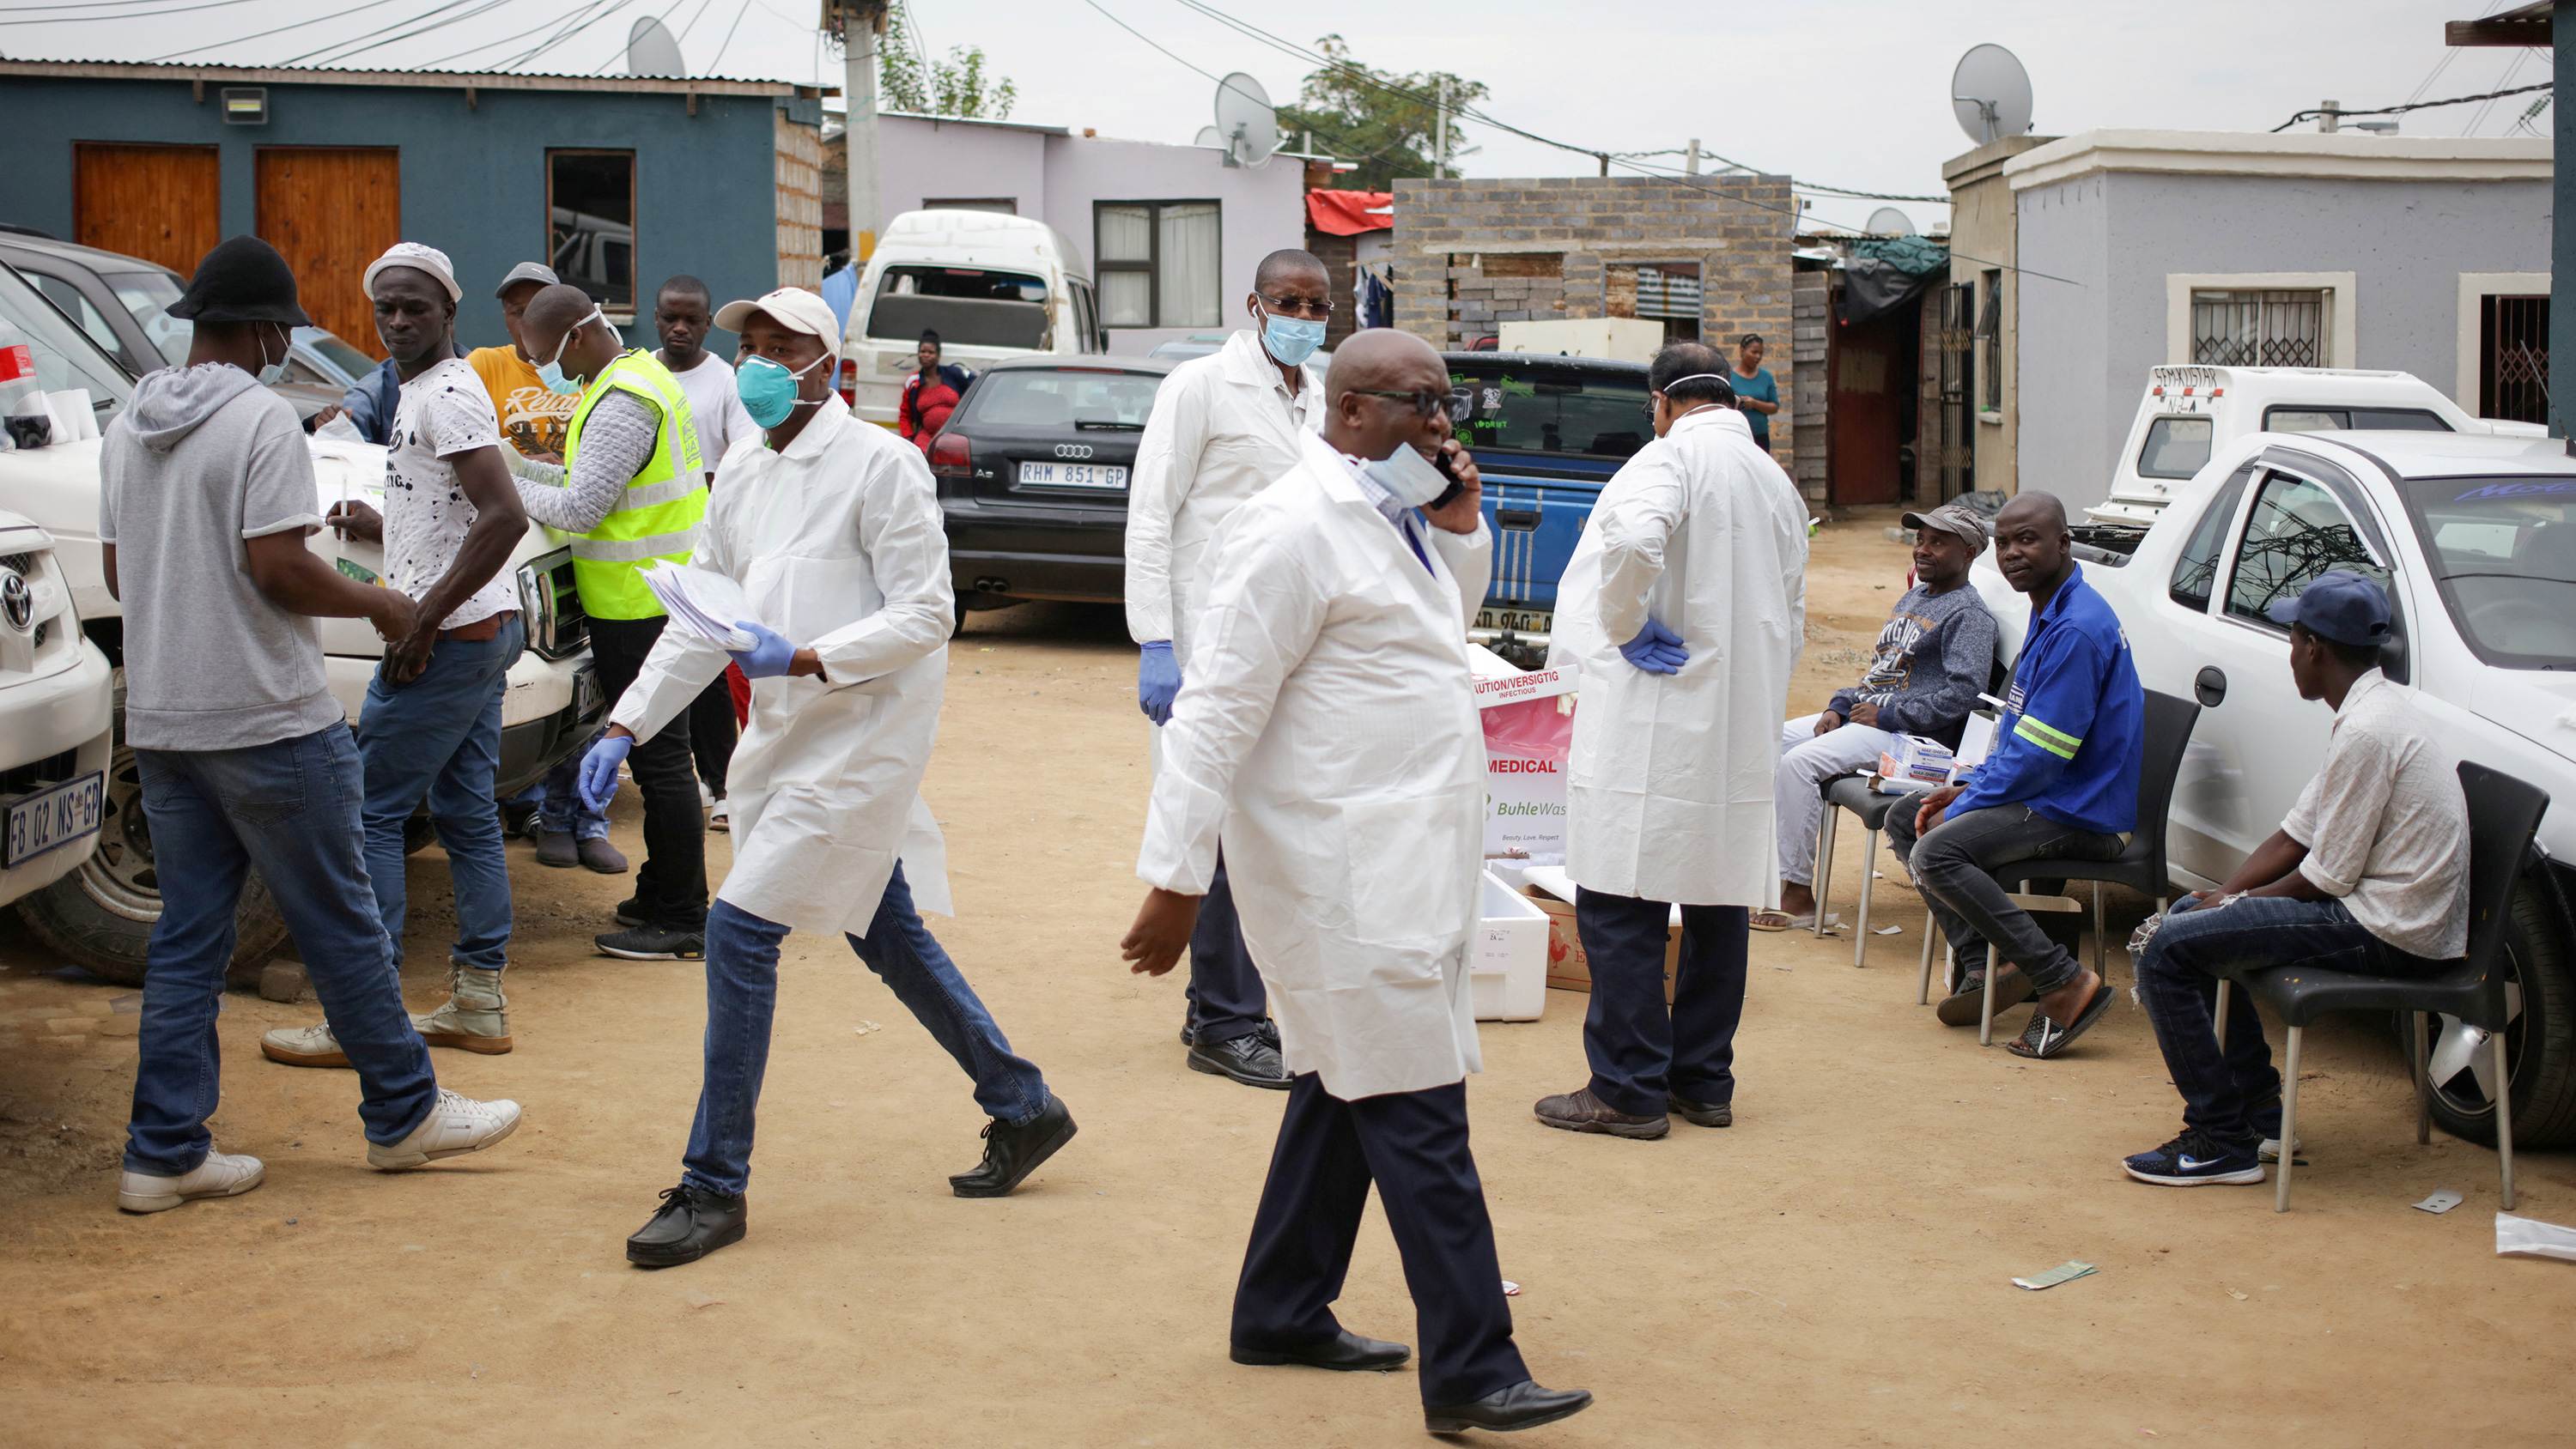 The photo shows about a half dozen health workers wearing white lab coats and a number of civilians waiting to be tested.